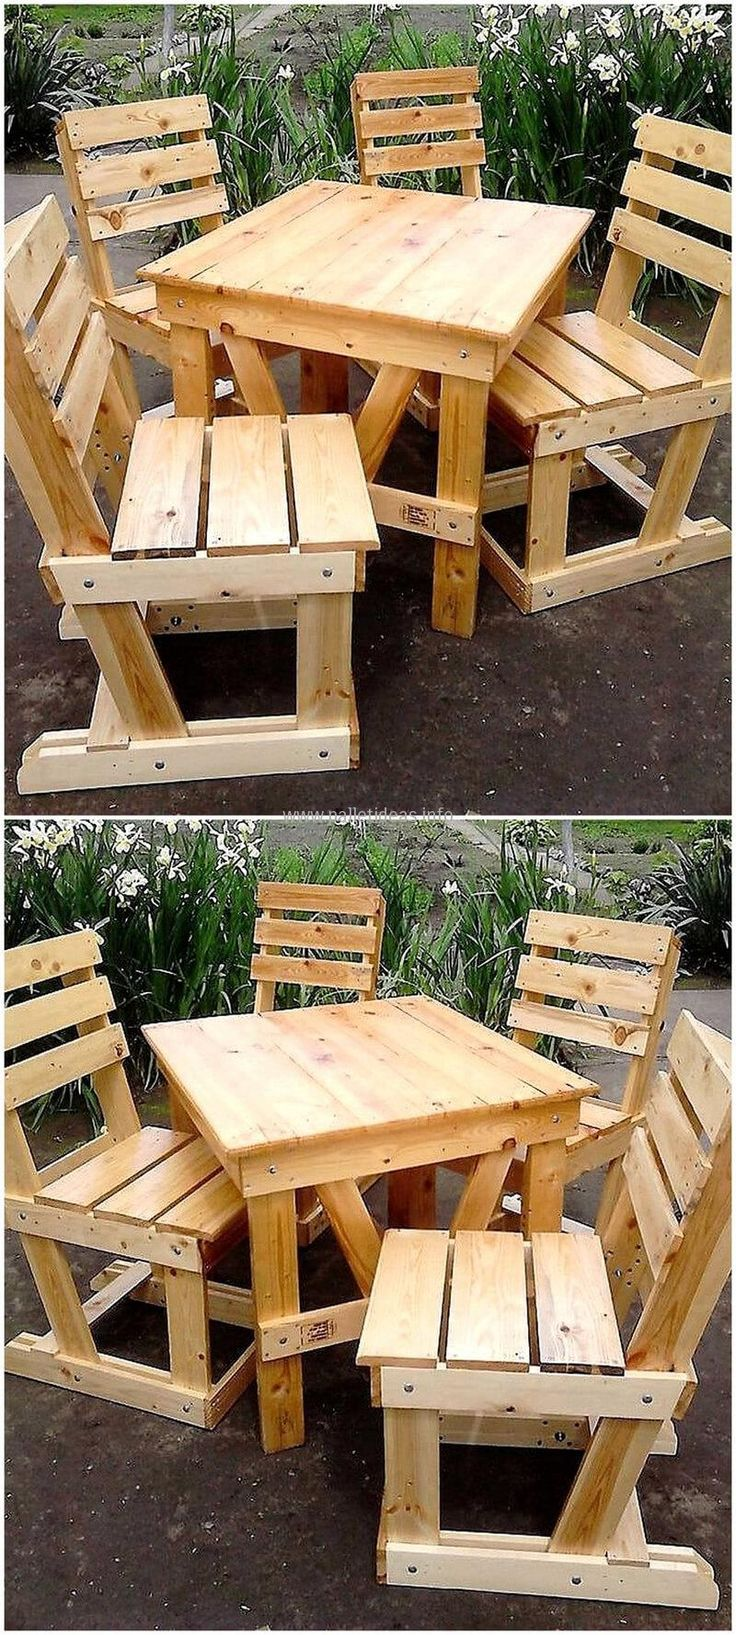 Wooden transport pallets have become increasingly popular for diy - Creative Diy Ideas With Reclaimed Wood Pallets